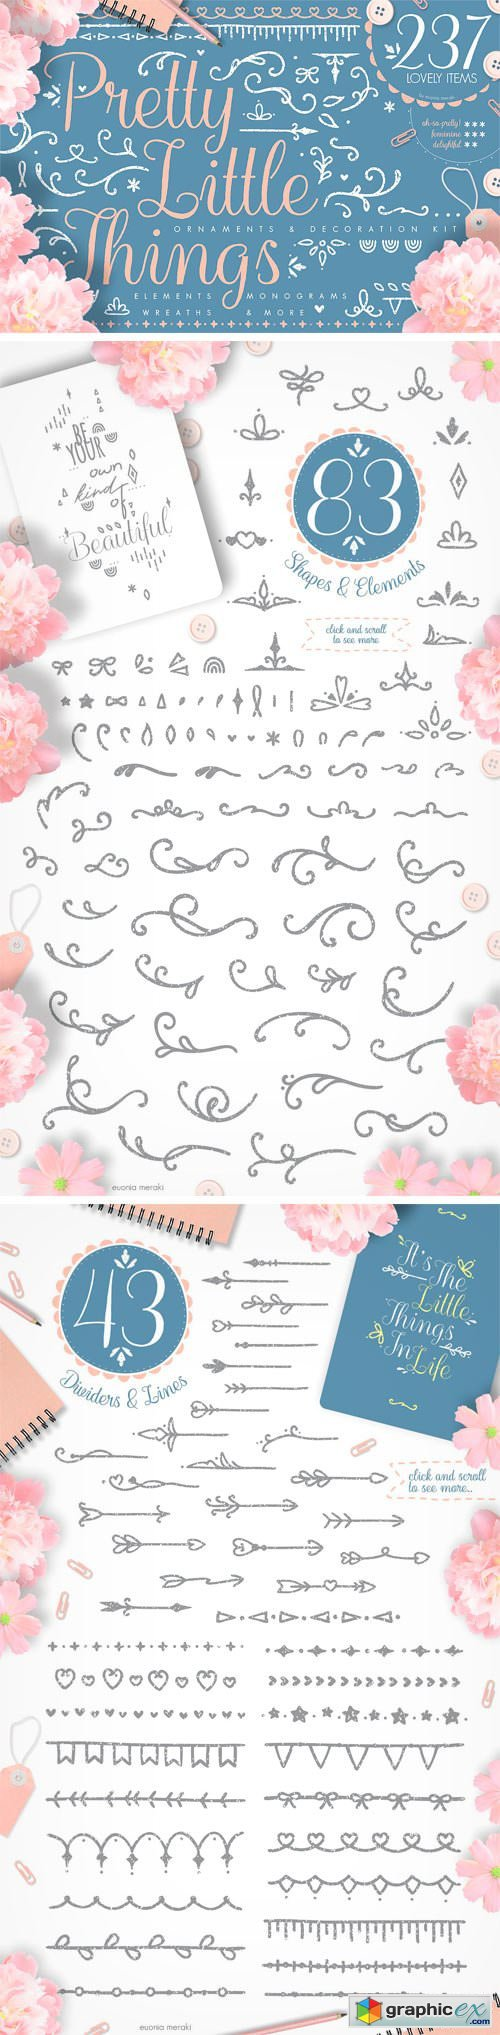 Pretty Little Things - Decoration Kit